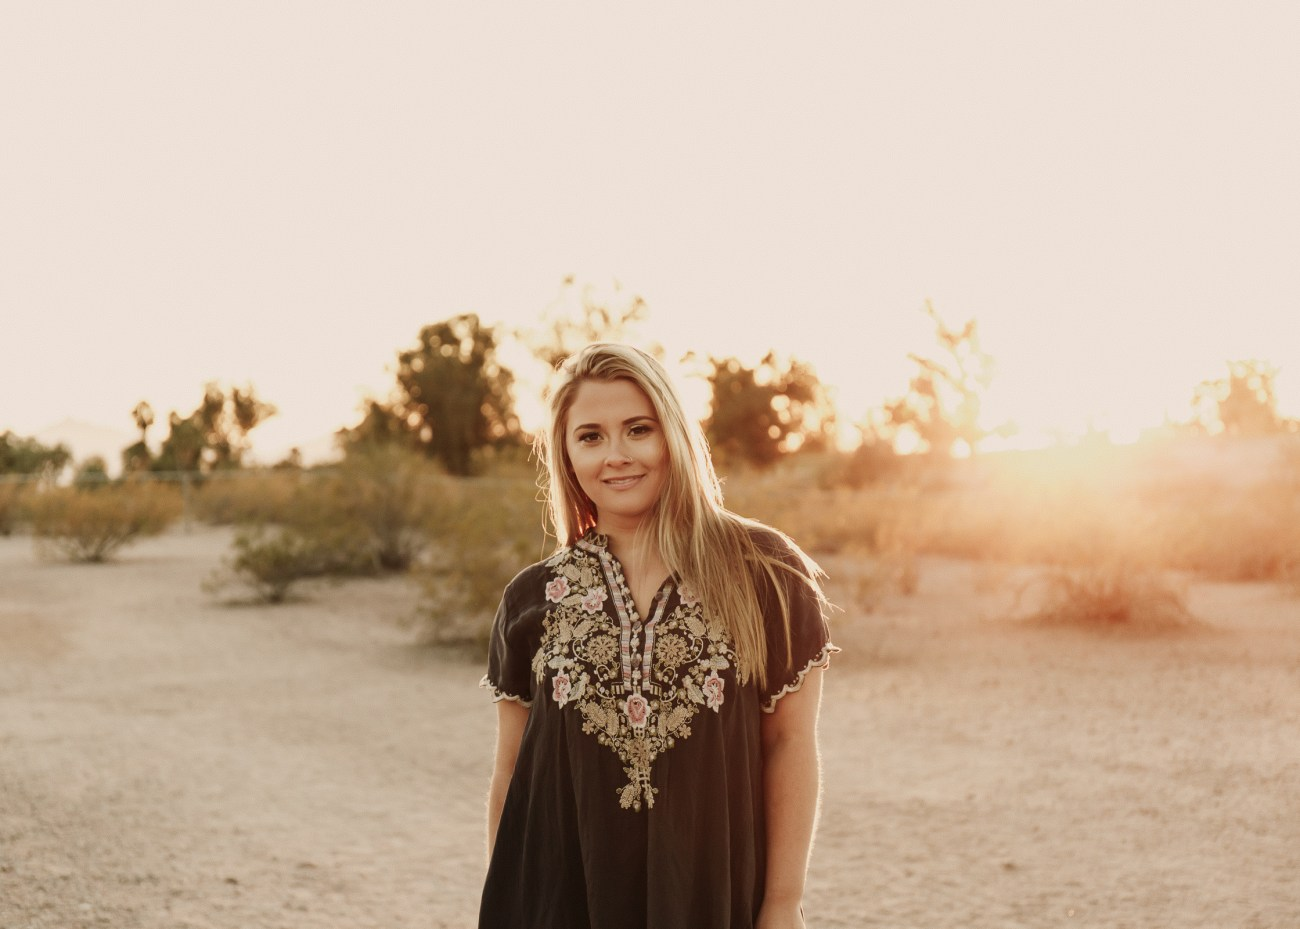 Megan Claire Photography | Arizona Wedding Photographer. Phoenix desert portrait photoshoot. @meganclairephoto